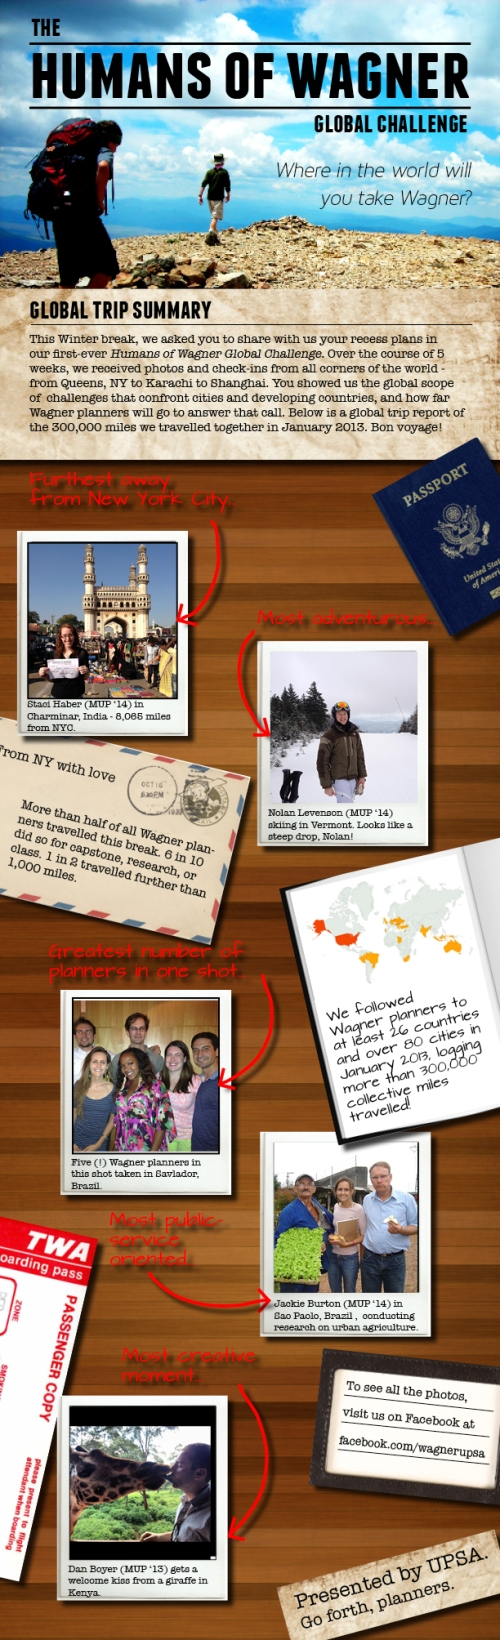 Humans of Wagner Report